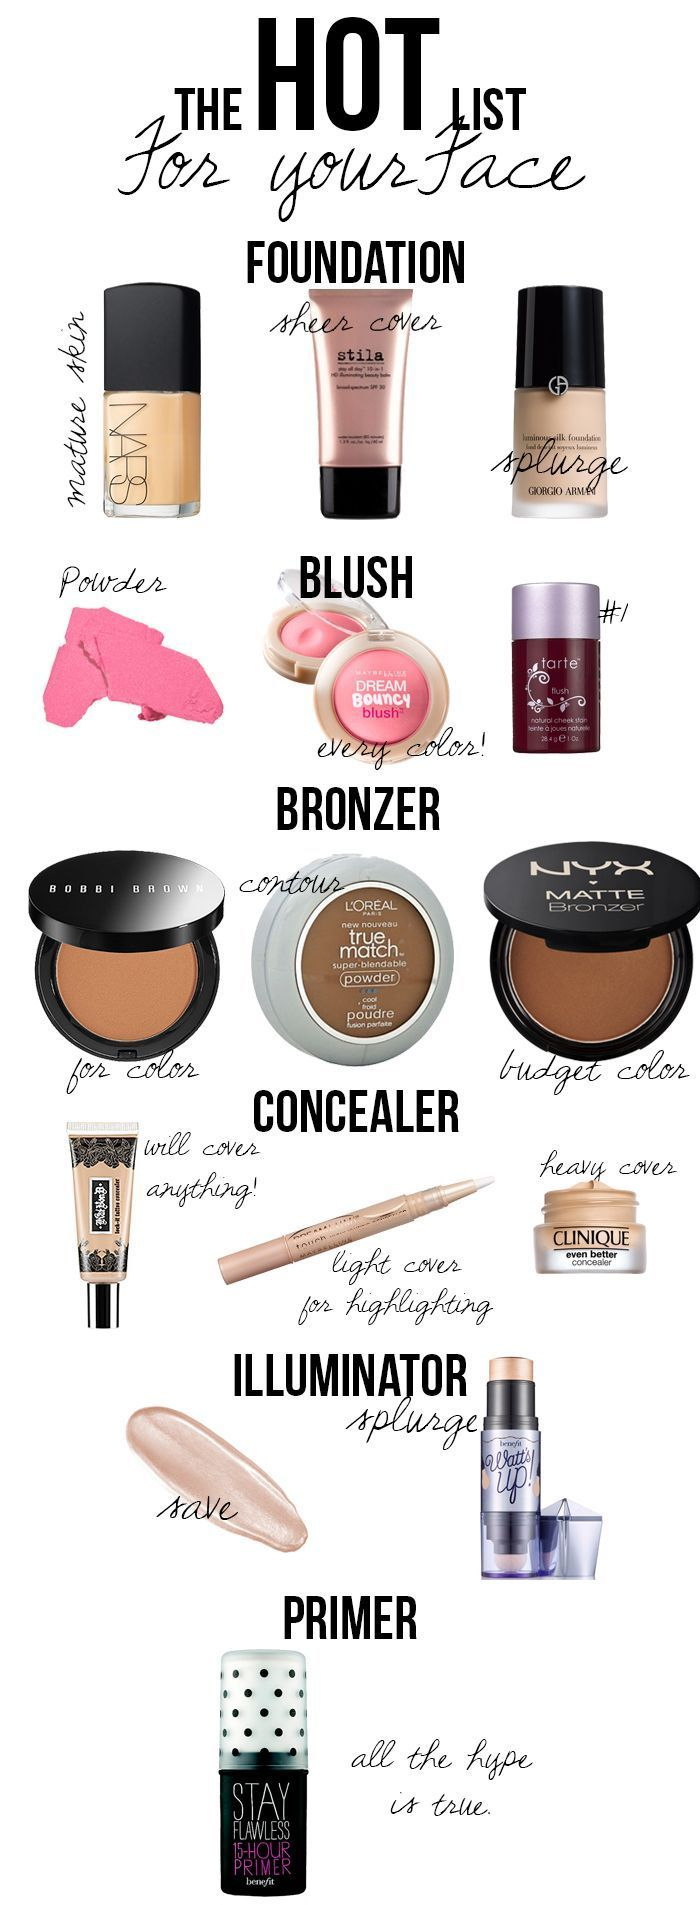 the best products according to a makeup artist. Wish I